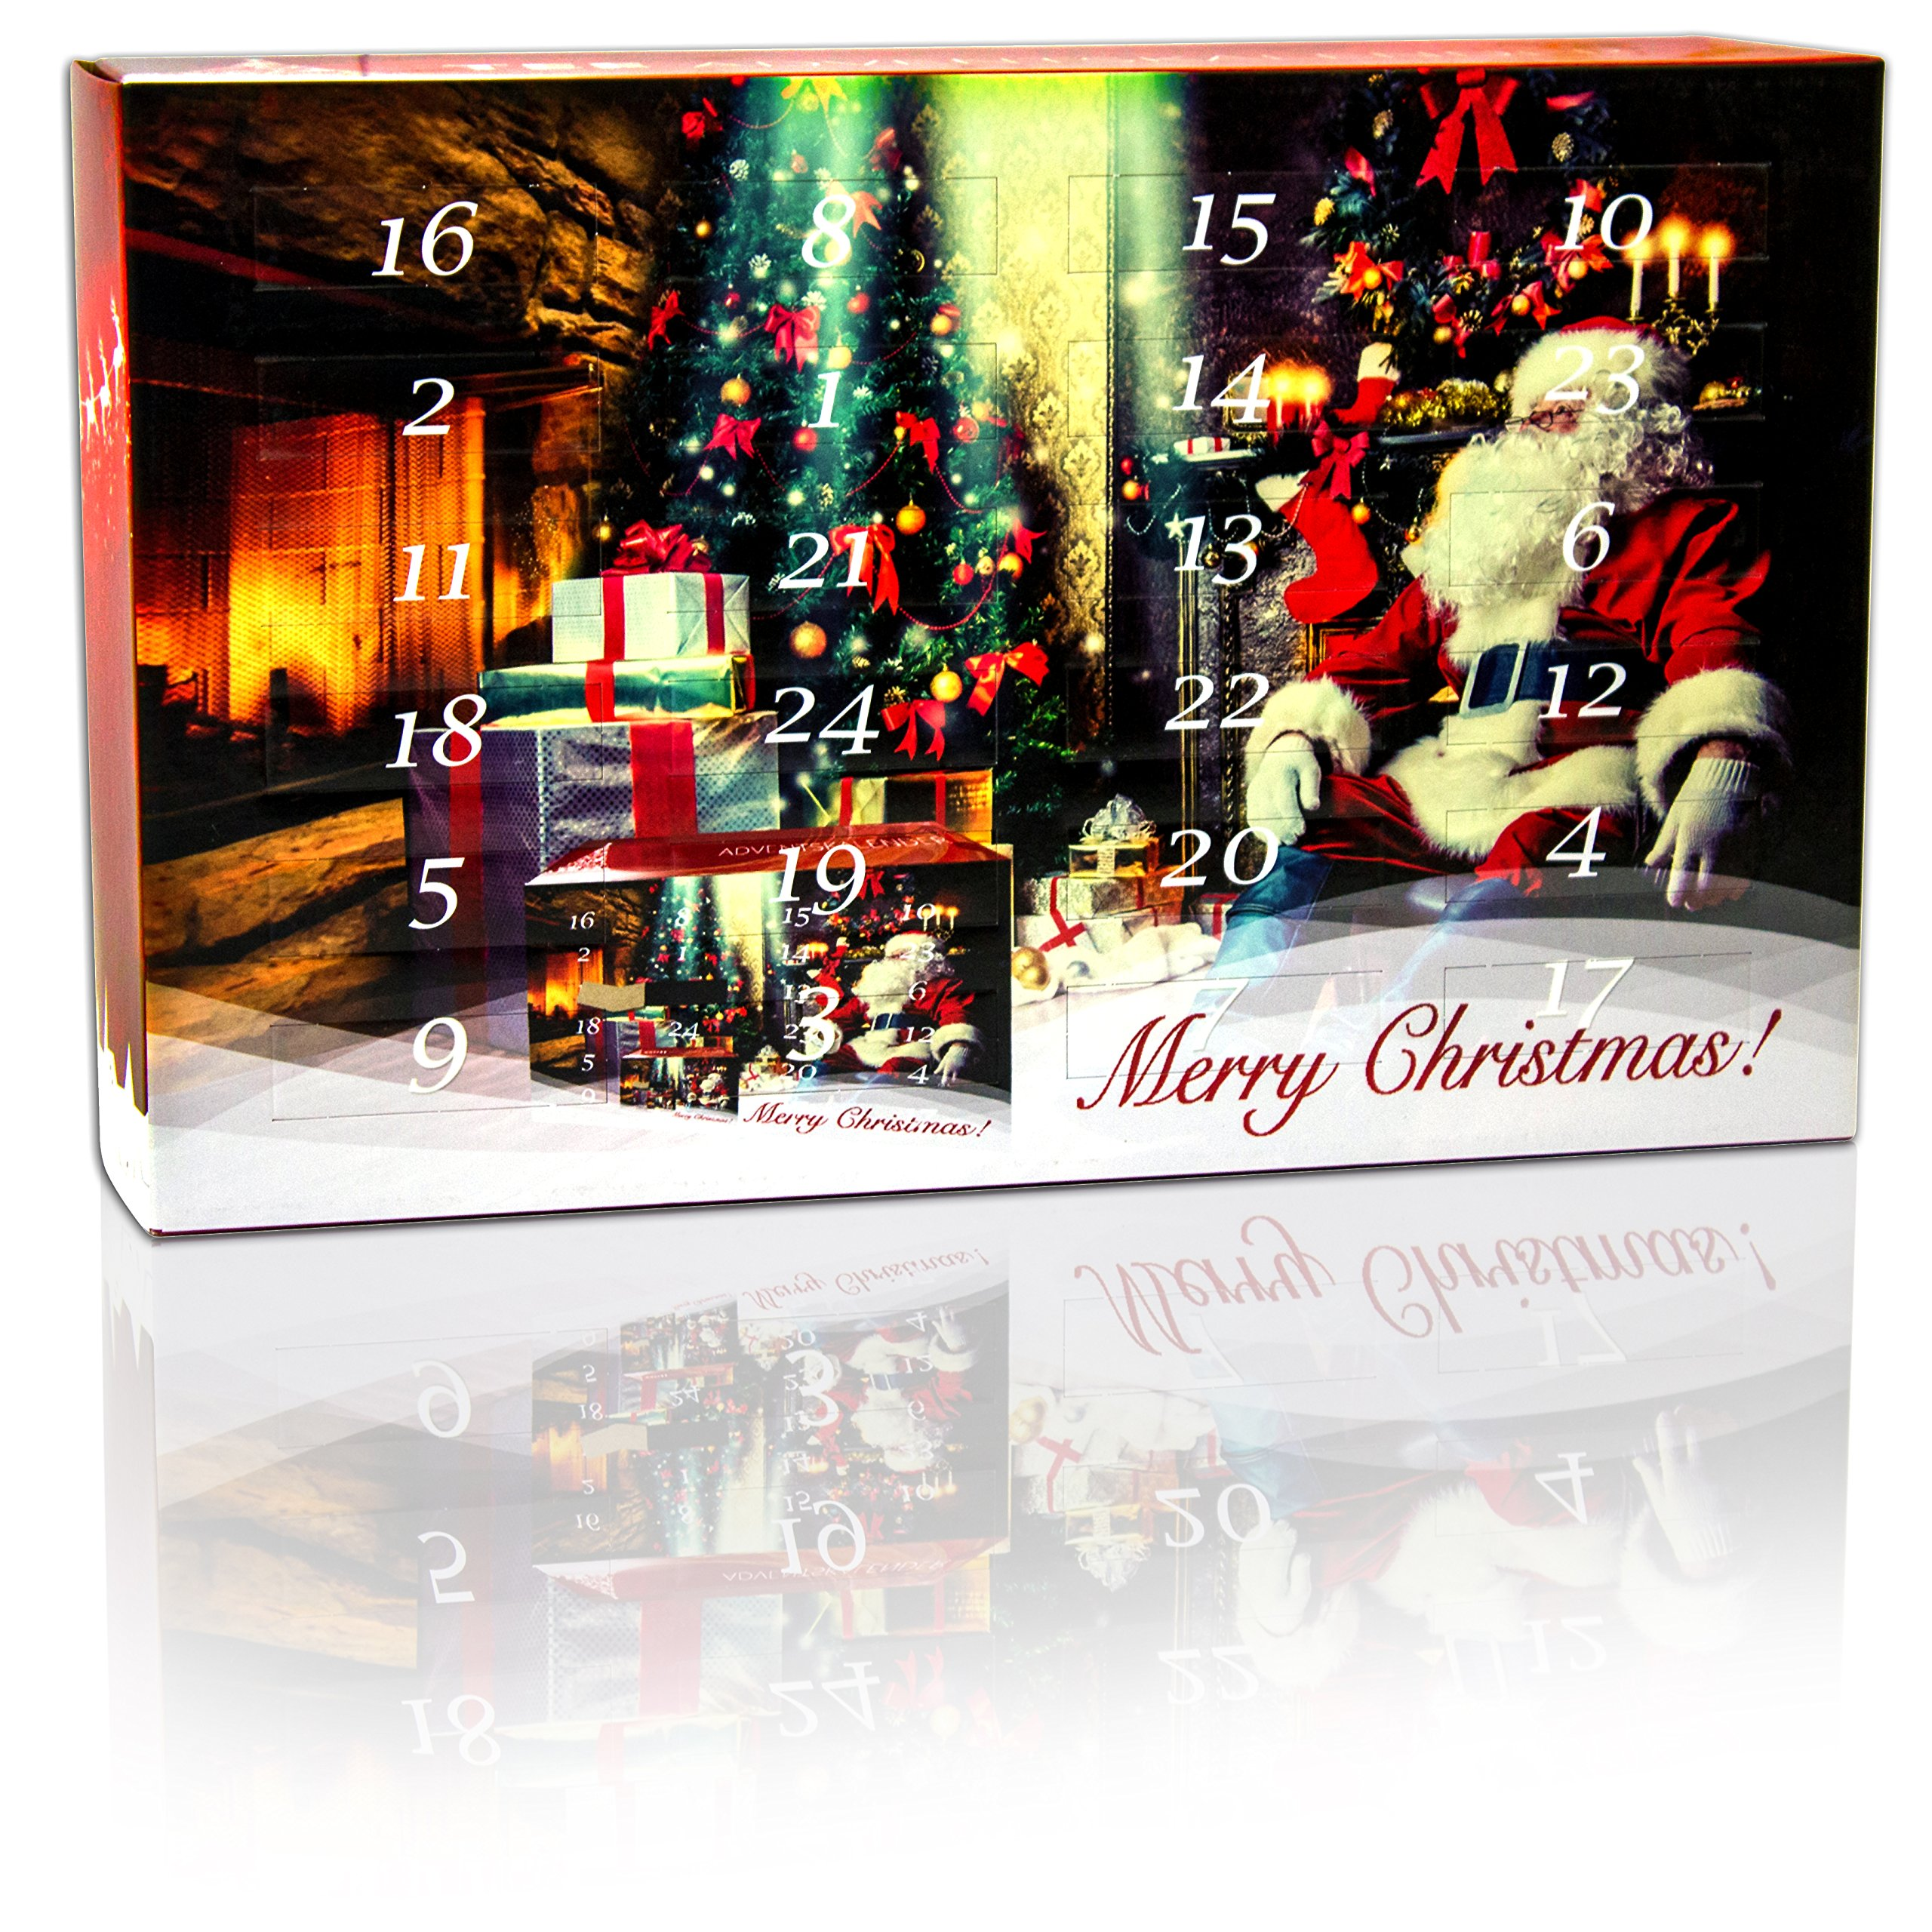 adventskalender mit hochwertigem kaffee aus aller welt. Black Bedroom Furniture Sets. Home Design Ideas